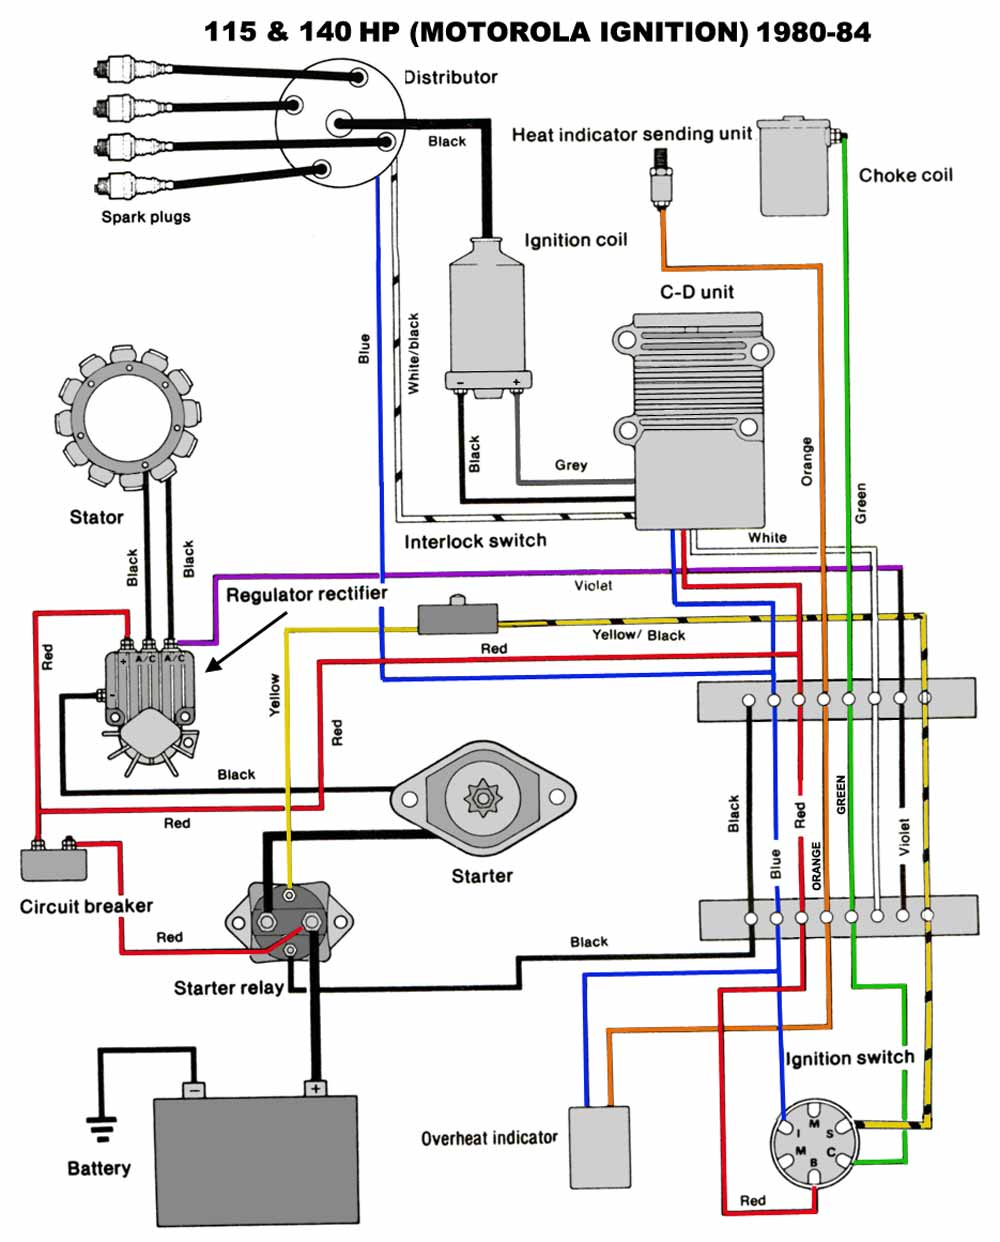 1988 Bayliner Ignition Switch Diagram Wiring Schematic - wiring diagram  switches-what - switches-what.labottegadisilvia.it | Bayliner Ignition Wiring Diagram |  | switches-what.labottegadisilvia.it